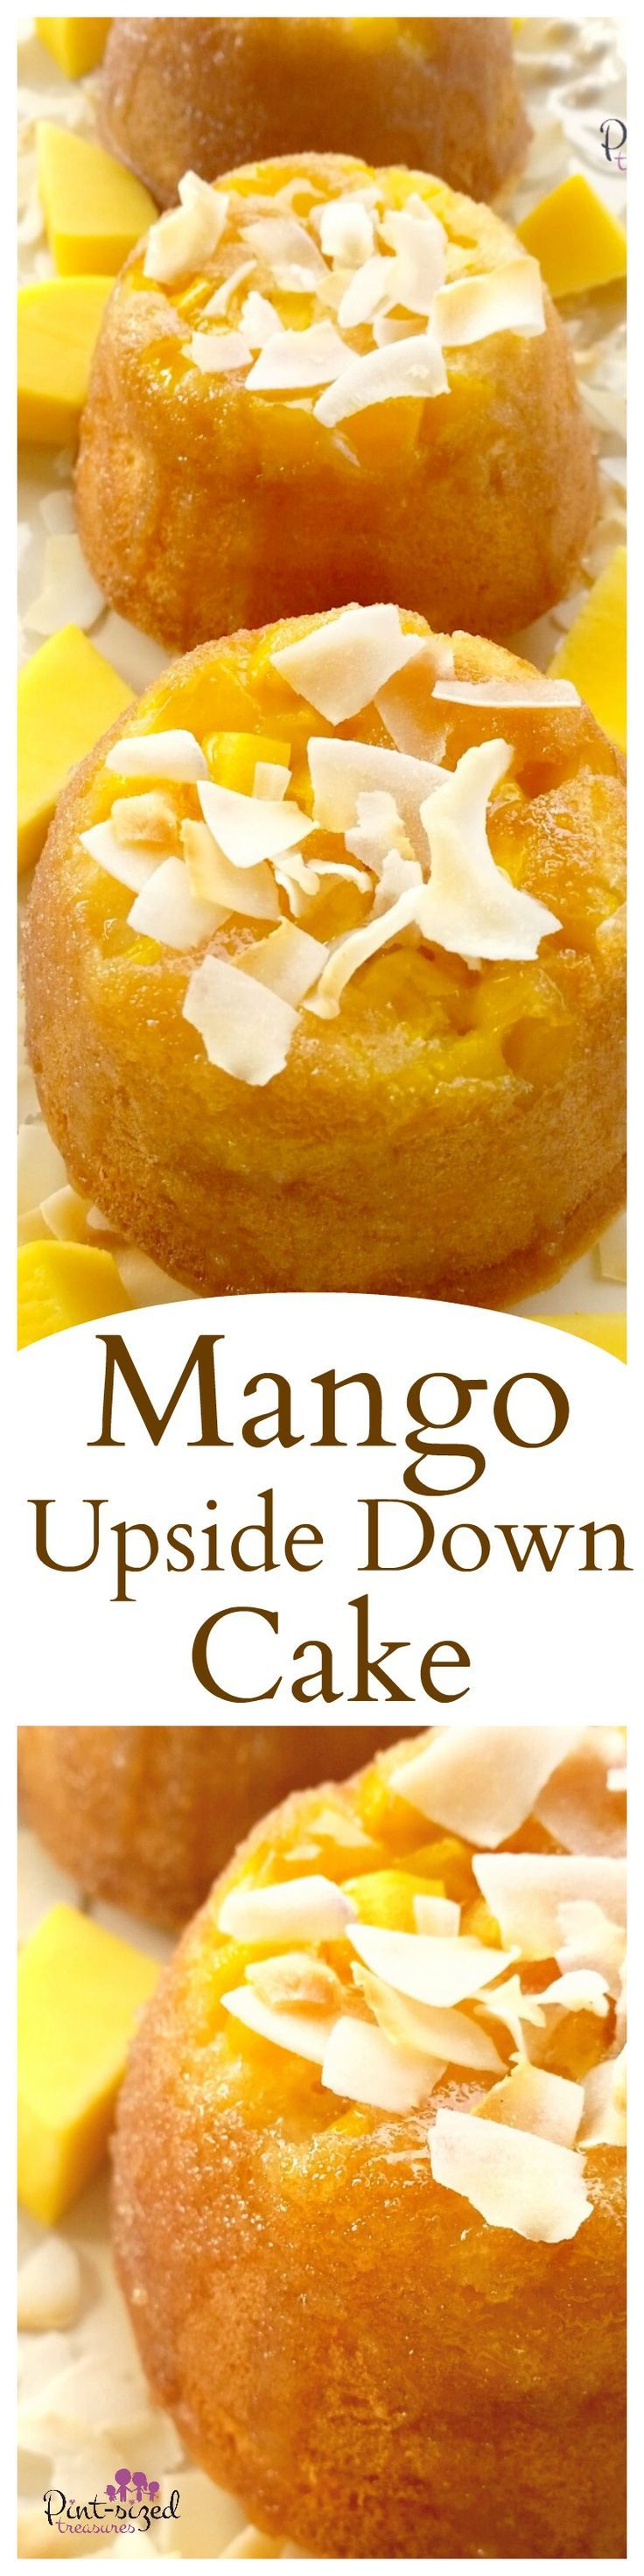 Gorgeous mango upside down cakes are topped with a homemade syrup that adds an additional touch of sweetness to this super-moist, rich, fruity cake. And don't forget the toasted coconuts that are sprinkled throughout the cake and on top! Enjoy this super-